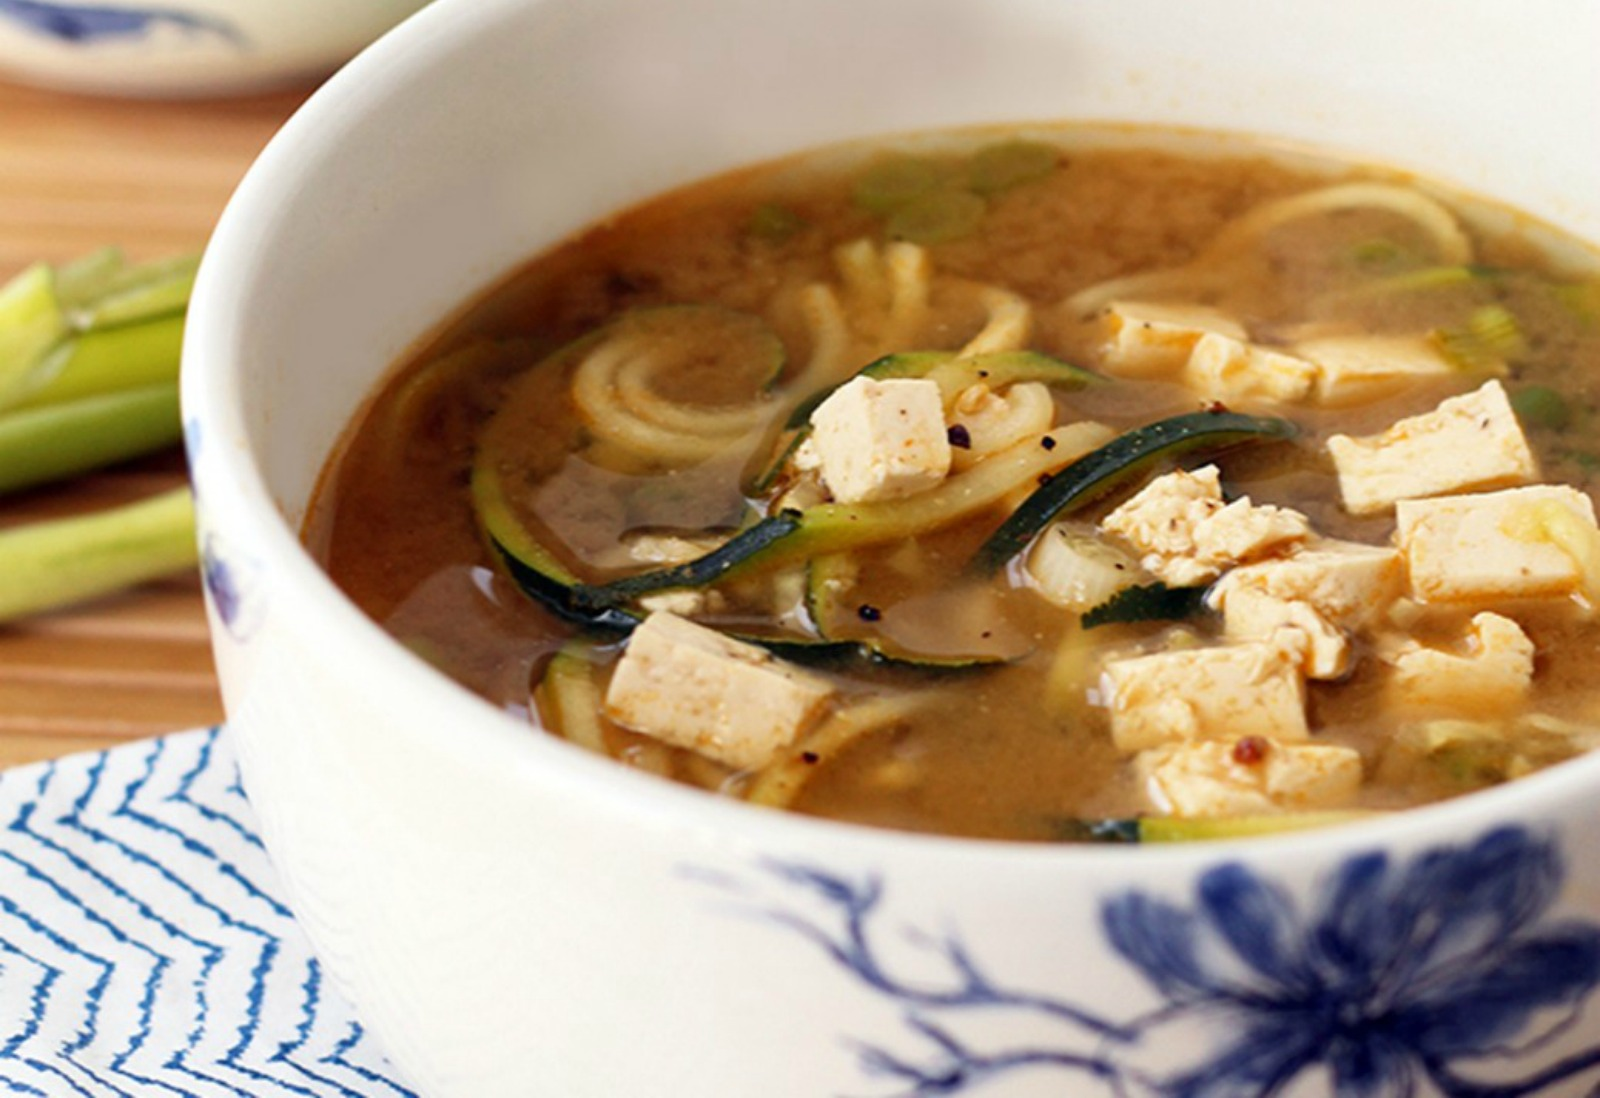 miso green tea, ginger, and tofu soup